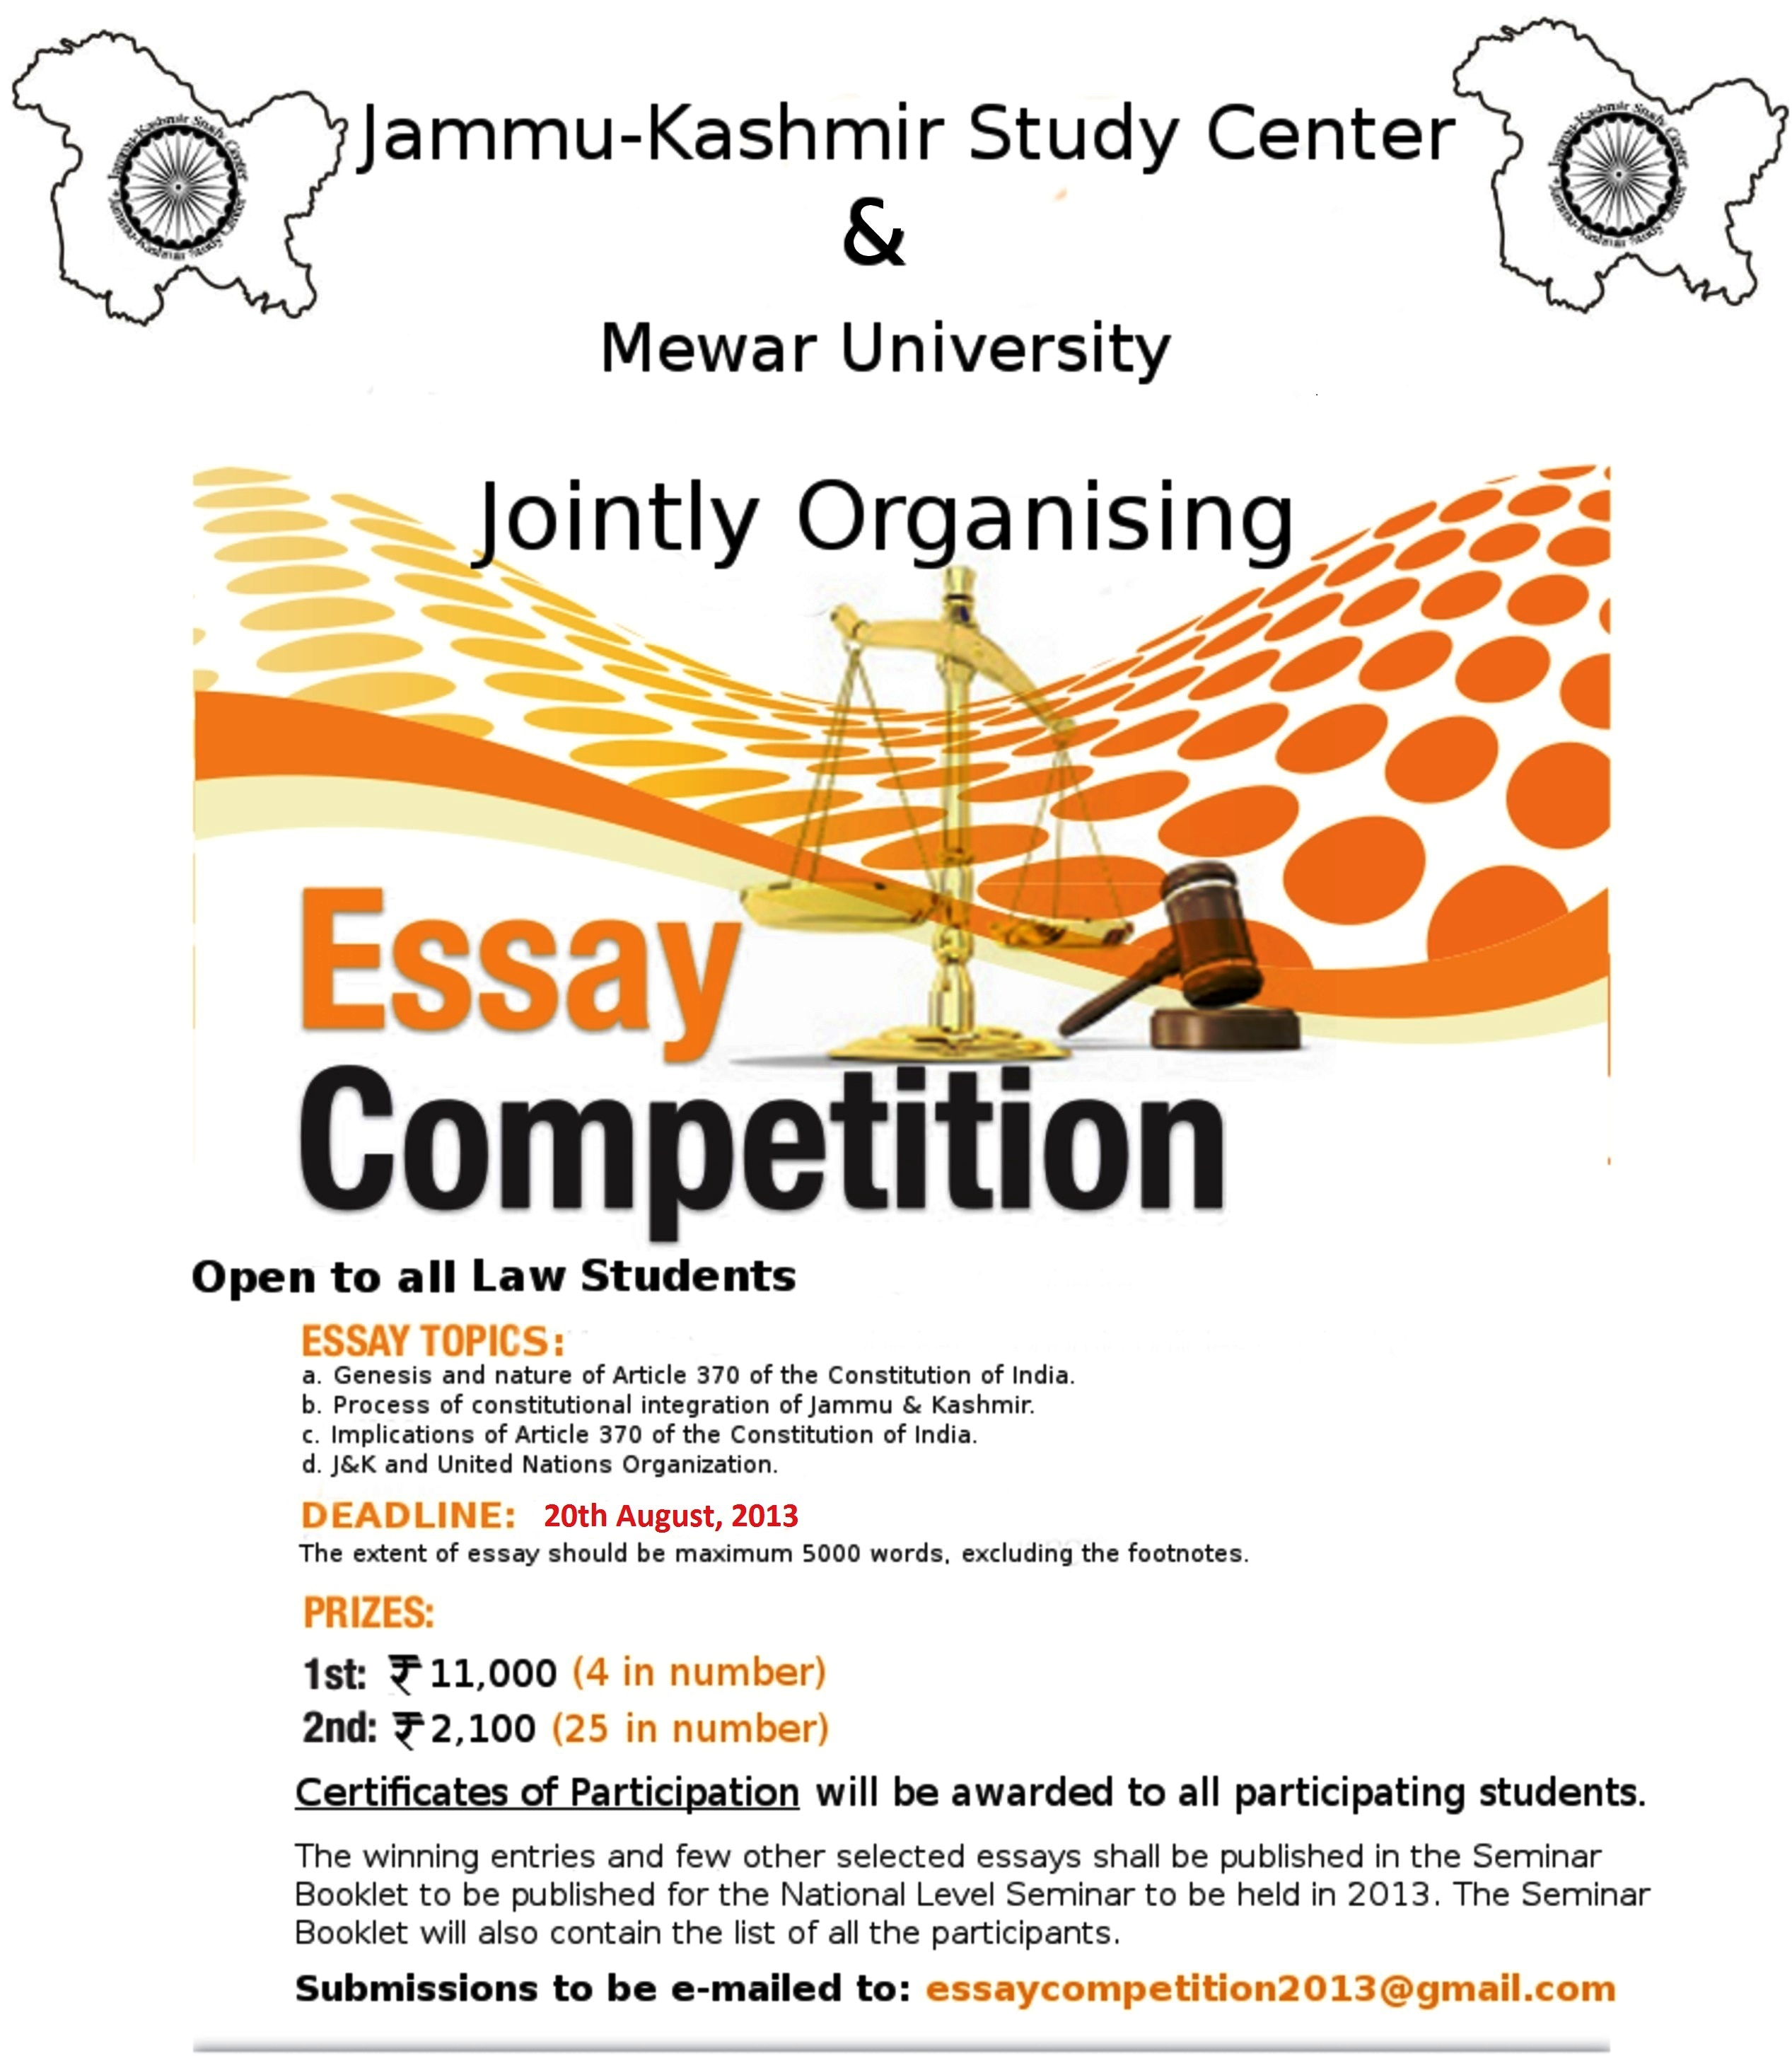 Public Health Essay Essay Competition Poster Into The Wild Essay Thesis also Compare And Contrast Essay Papers National Level Essay Competition On Jammu  Kashmir For Law Students  An Essay On Newspaper